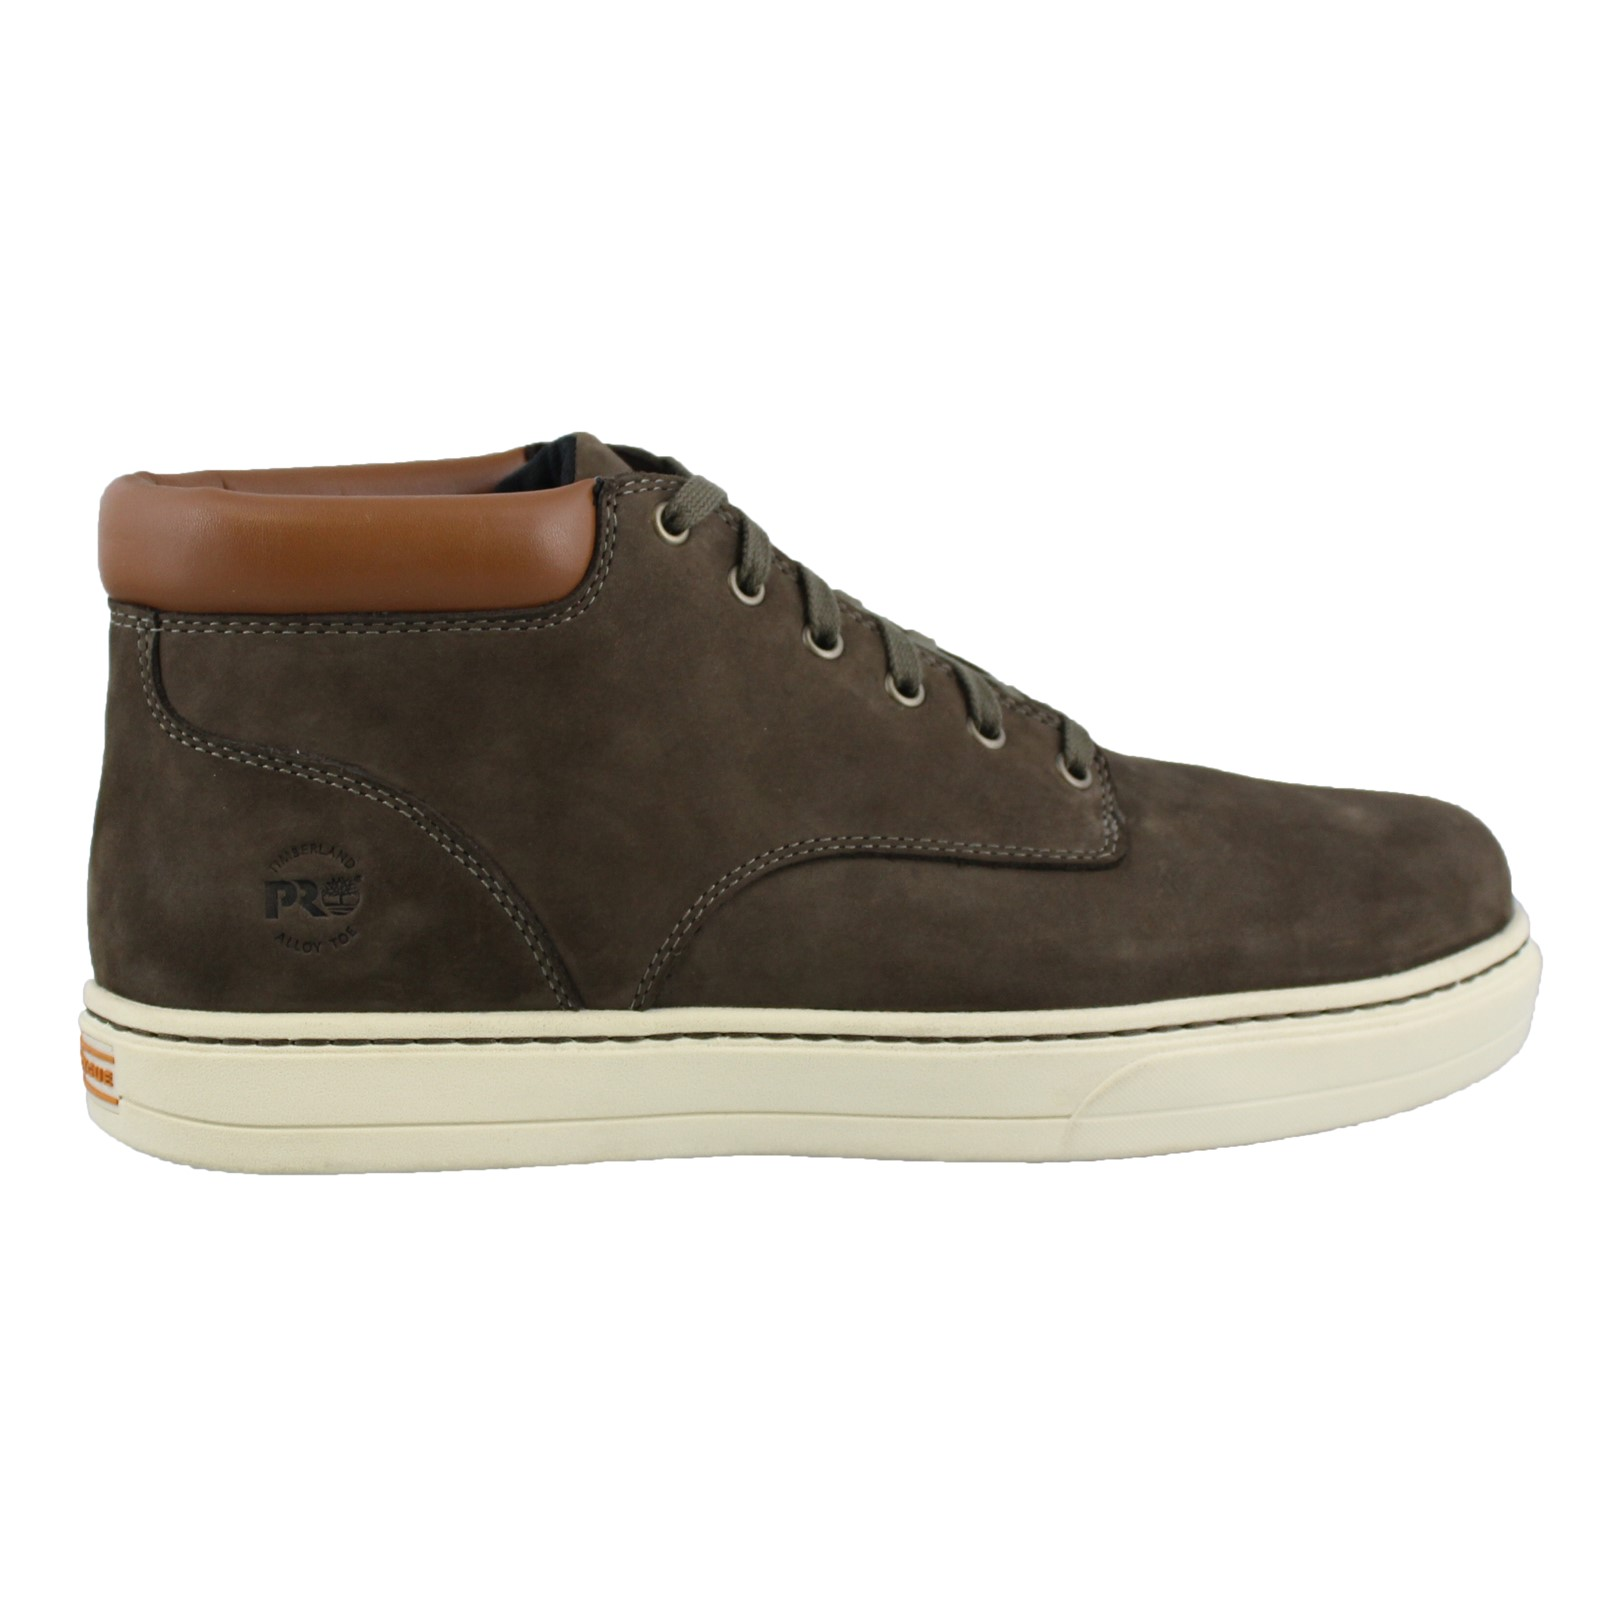 Men's Timberland Pro, Disruptor Chukka Lace up Work Shoes